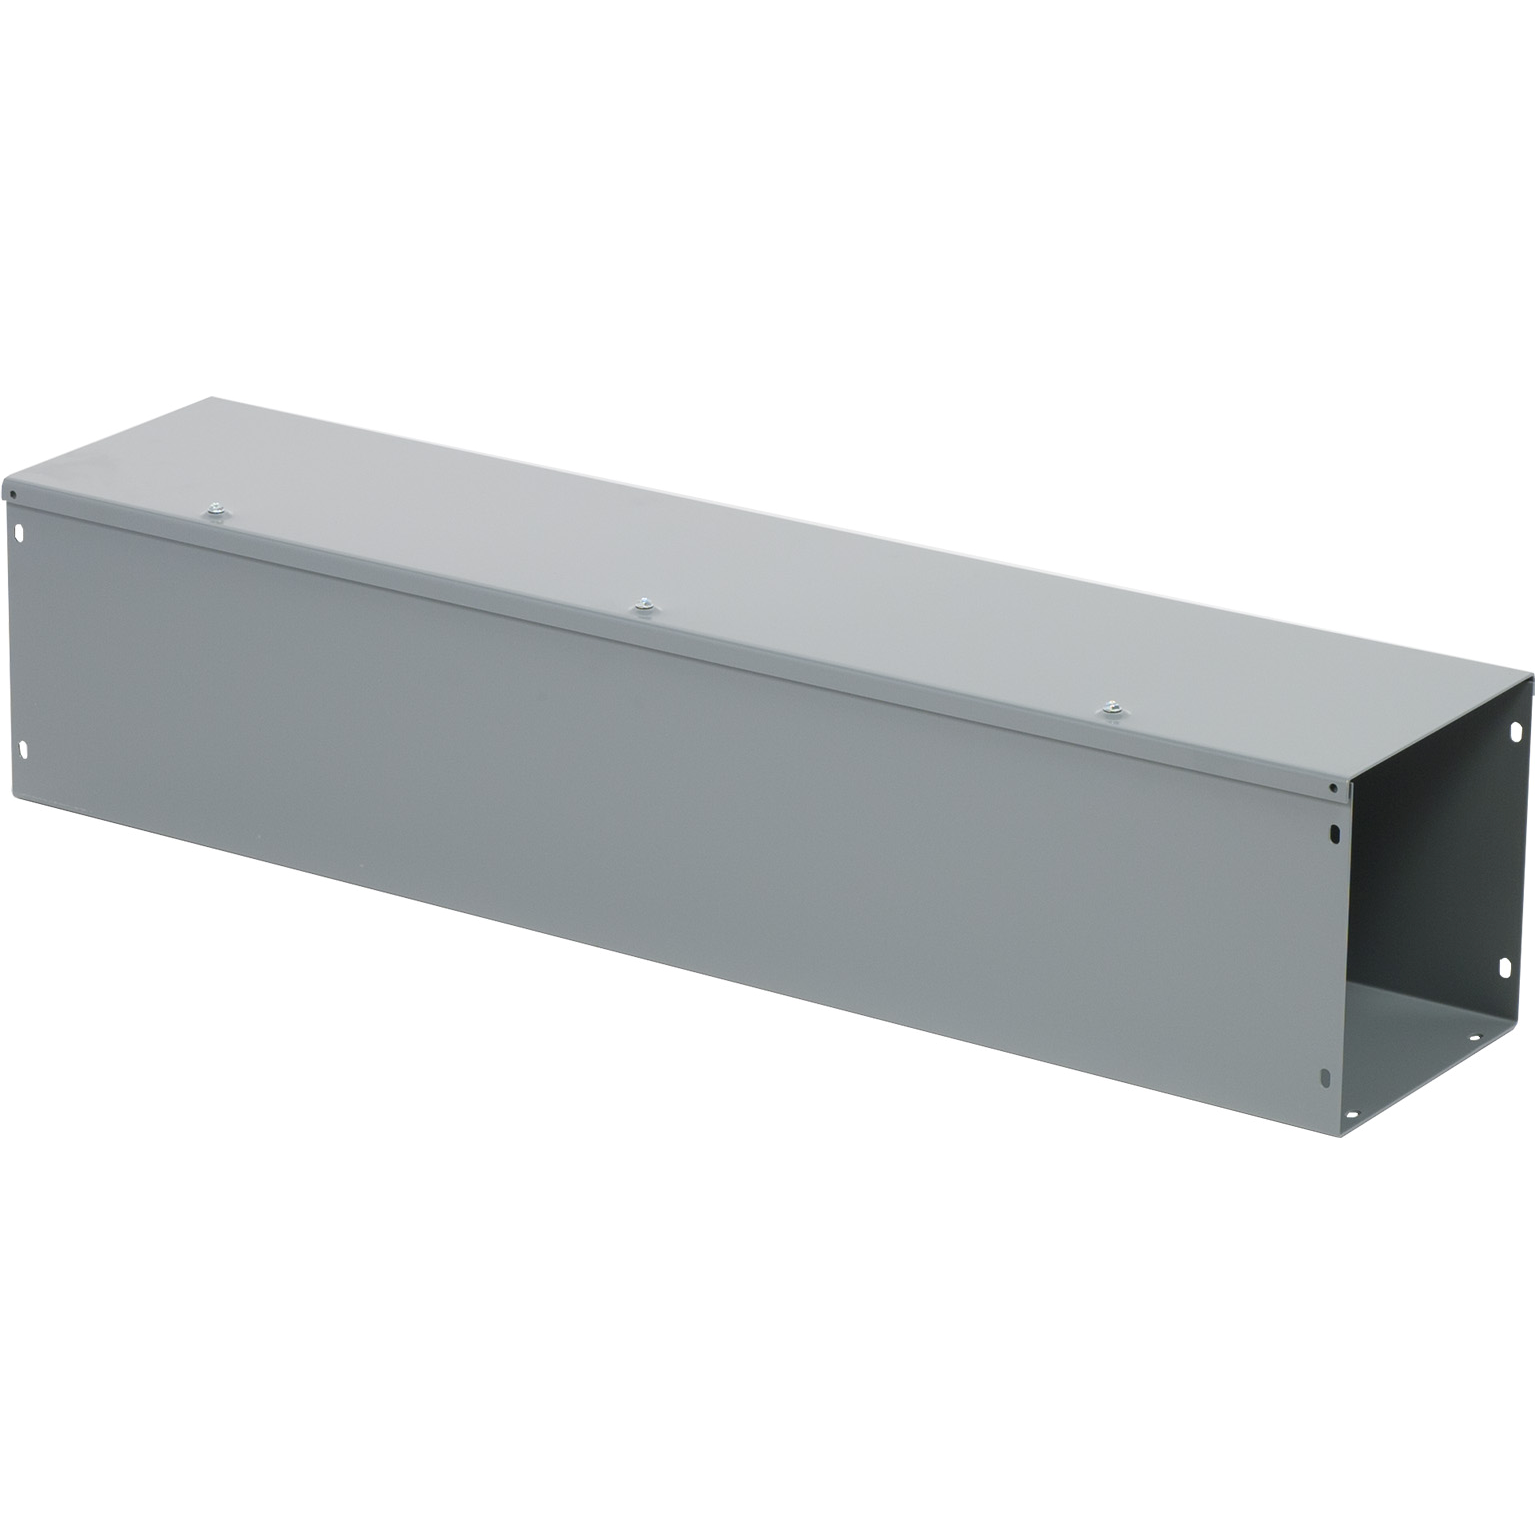 SQUARE D LDB83 8X8X3FT GRAY WIREWAY **CLOSING PLATES NOT INCLUDED - ORDER SEPARATELY